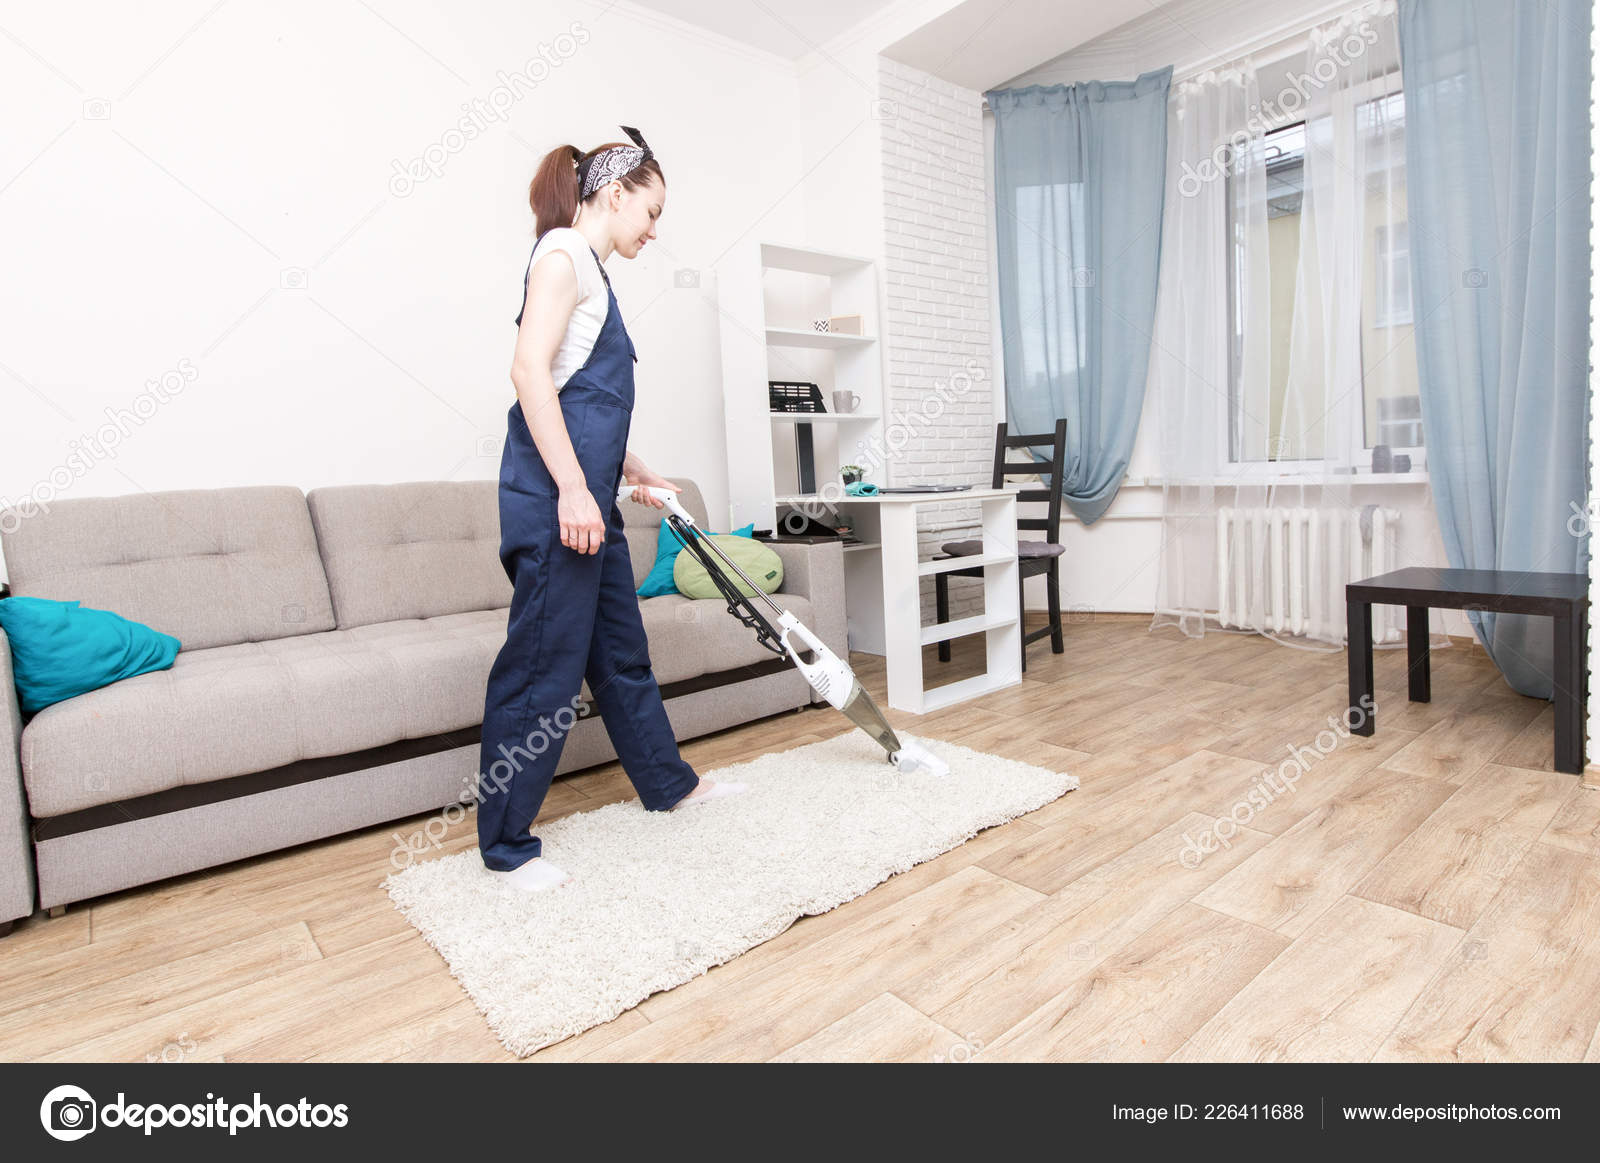 Sofa Service Cleaning Service With Professional Equipment During Work